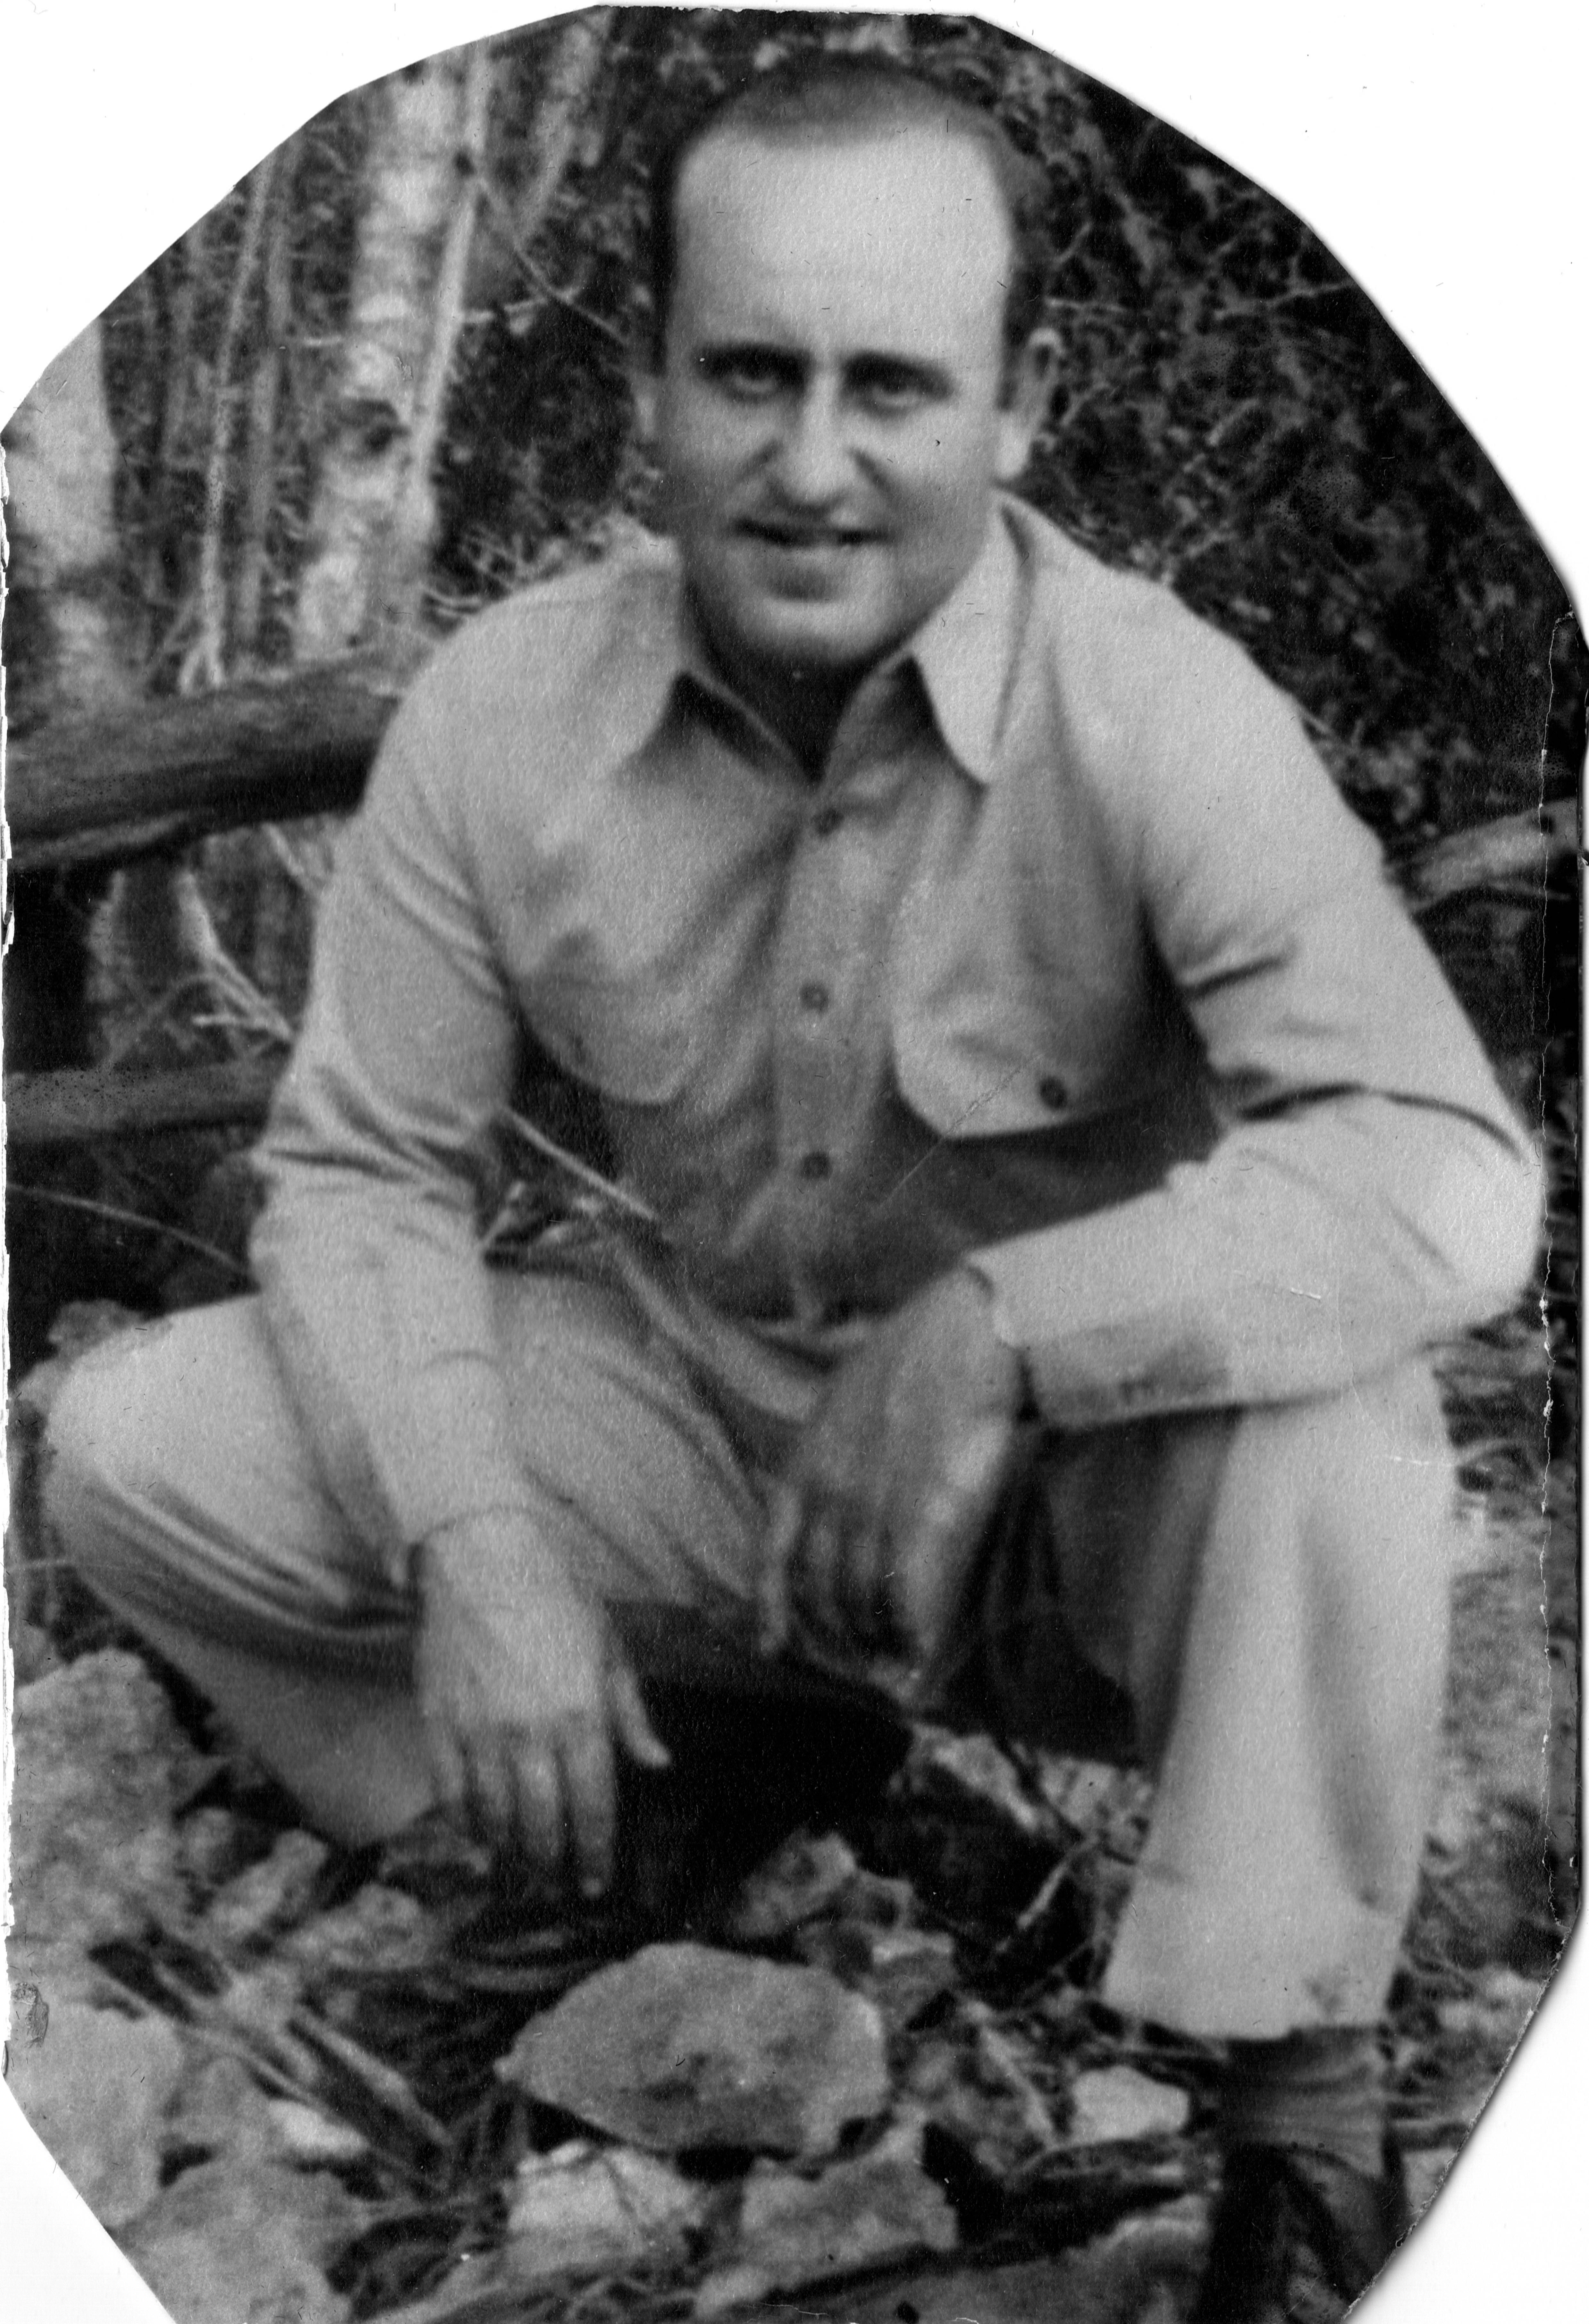 Bernard Gavrin was reported missing in Saipan while serving in the U.S. Army during World War II. Some of his remains and personal effects were recovered in 2013 and DNA from a family member helped confirm his identity. It was announced Wednesday Gavrin will be buried with full military honors in Arlington National Cemetery on Sept. 12.